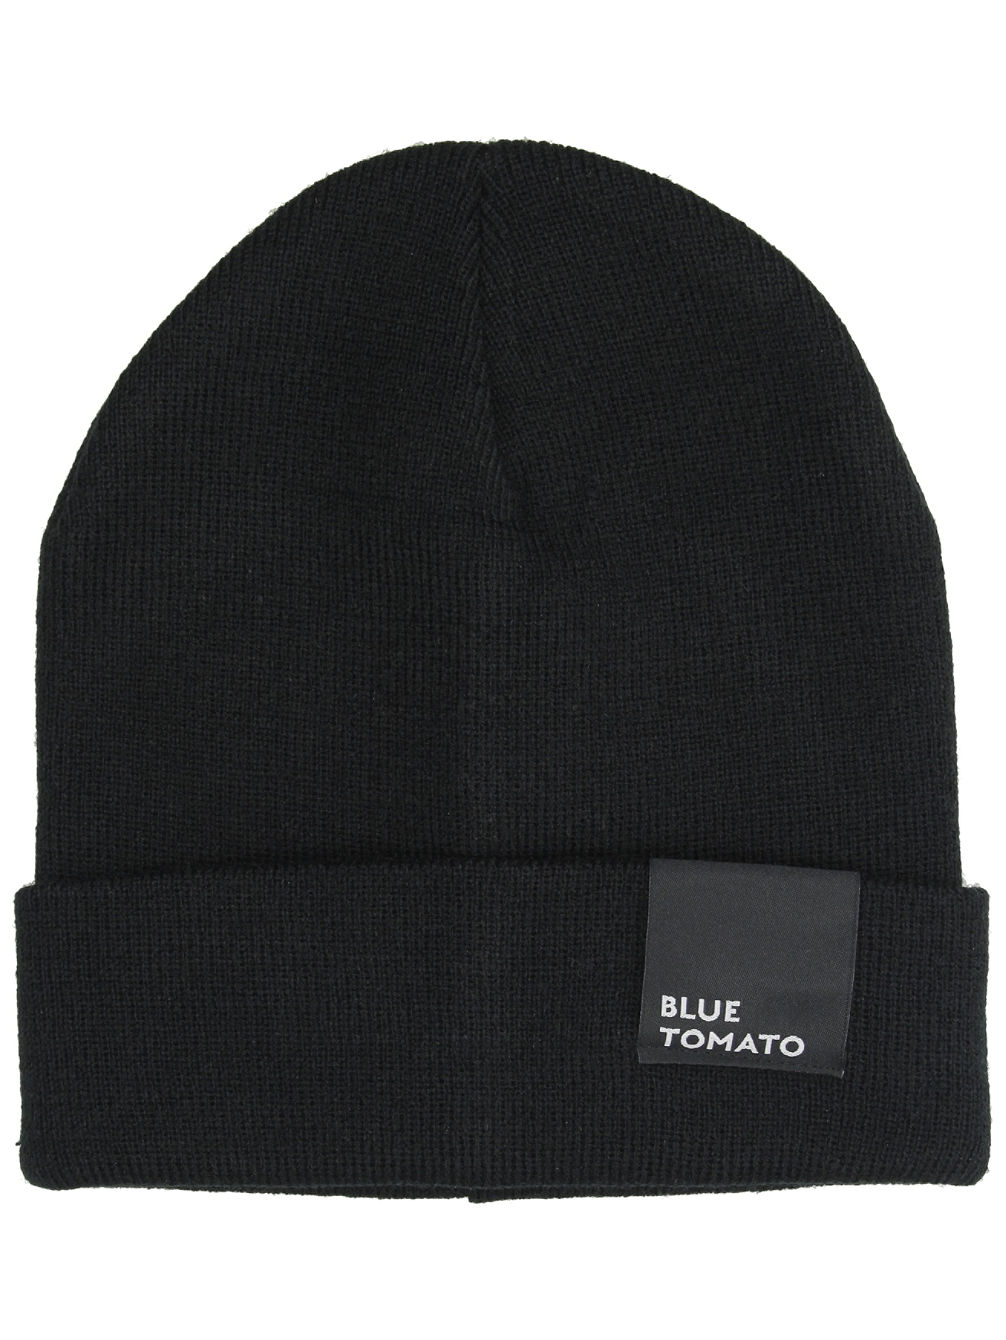 BT Authentic Beanie